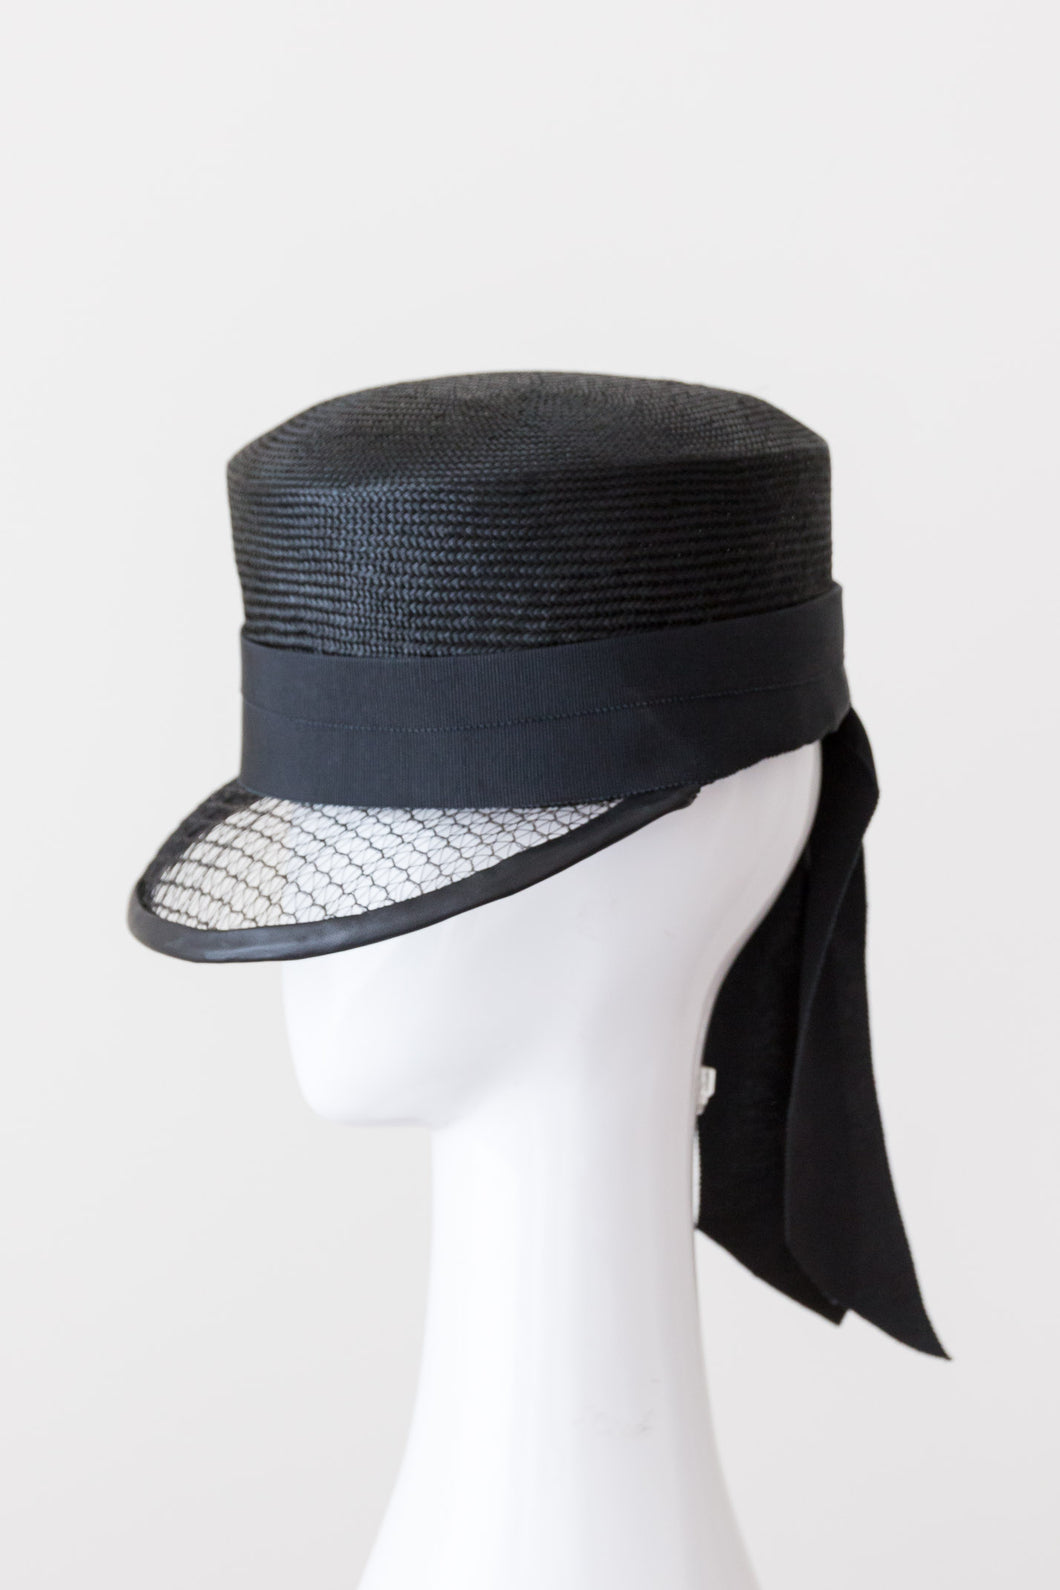 Black Cap with Veiled Visor by Felicity Northeast Millinery